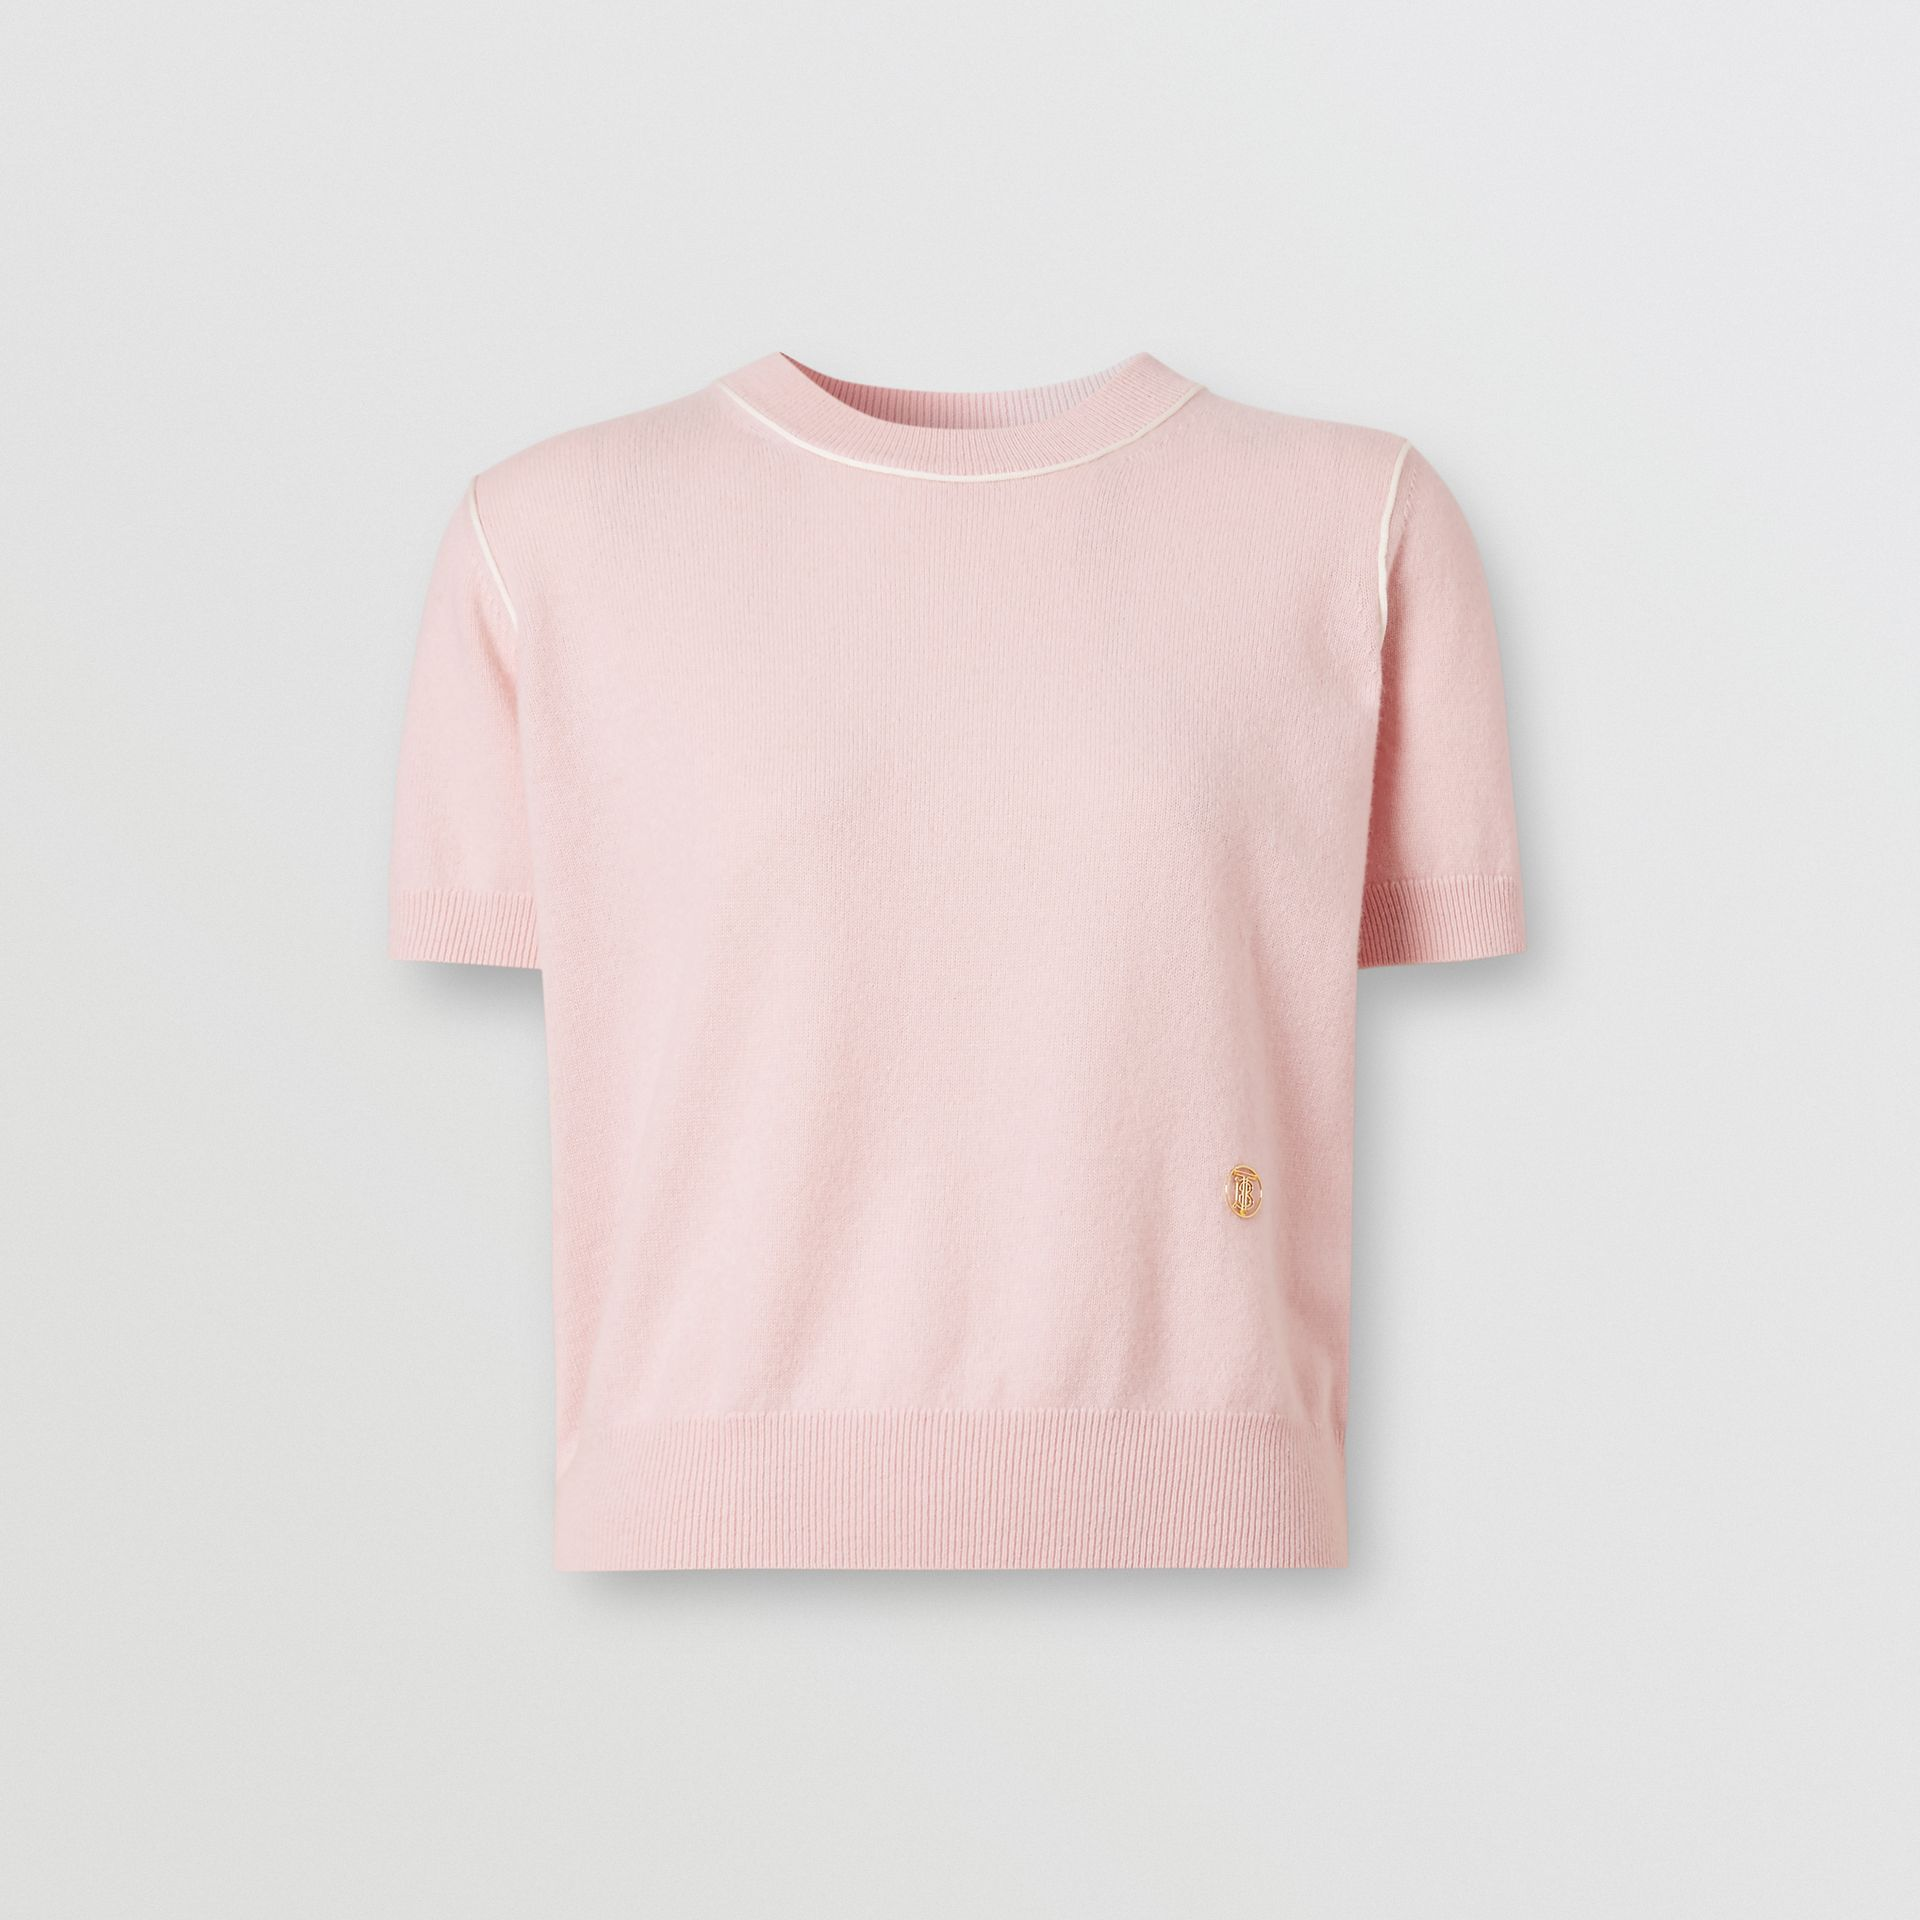 Short-sleeve Monogram Motif Cashmere Top in Copper Pink - Women | Burberry United Kingdom - gallery image 3